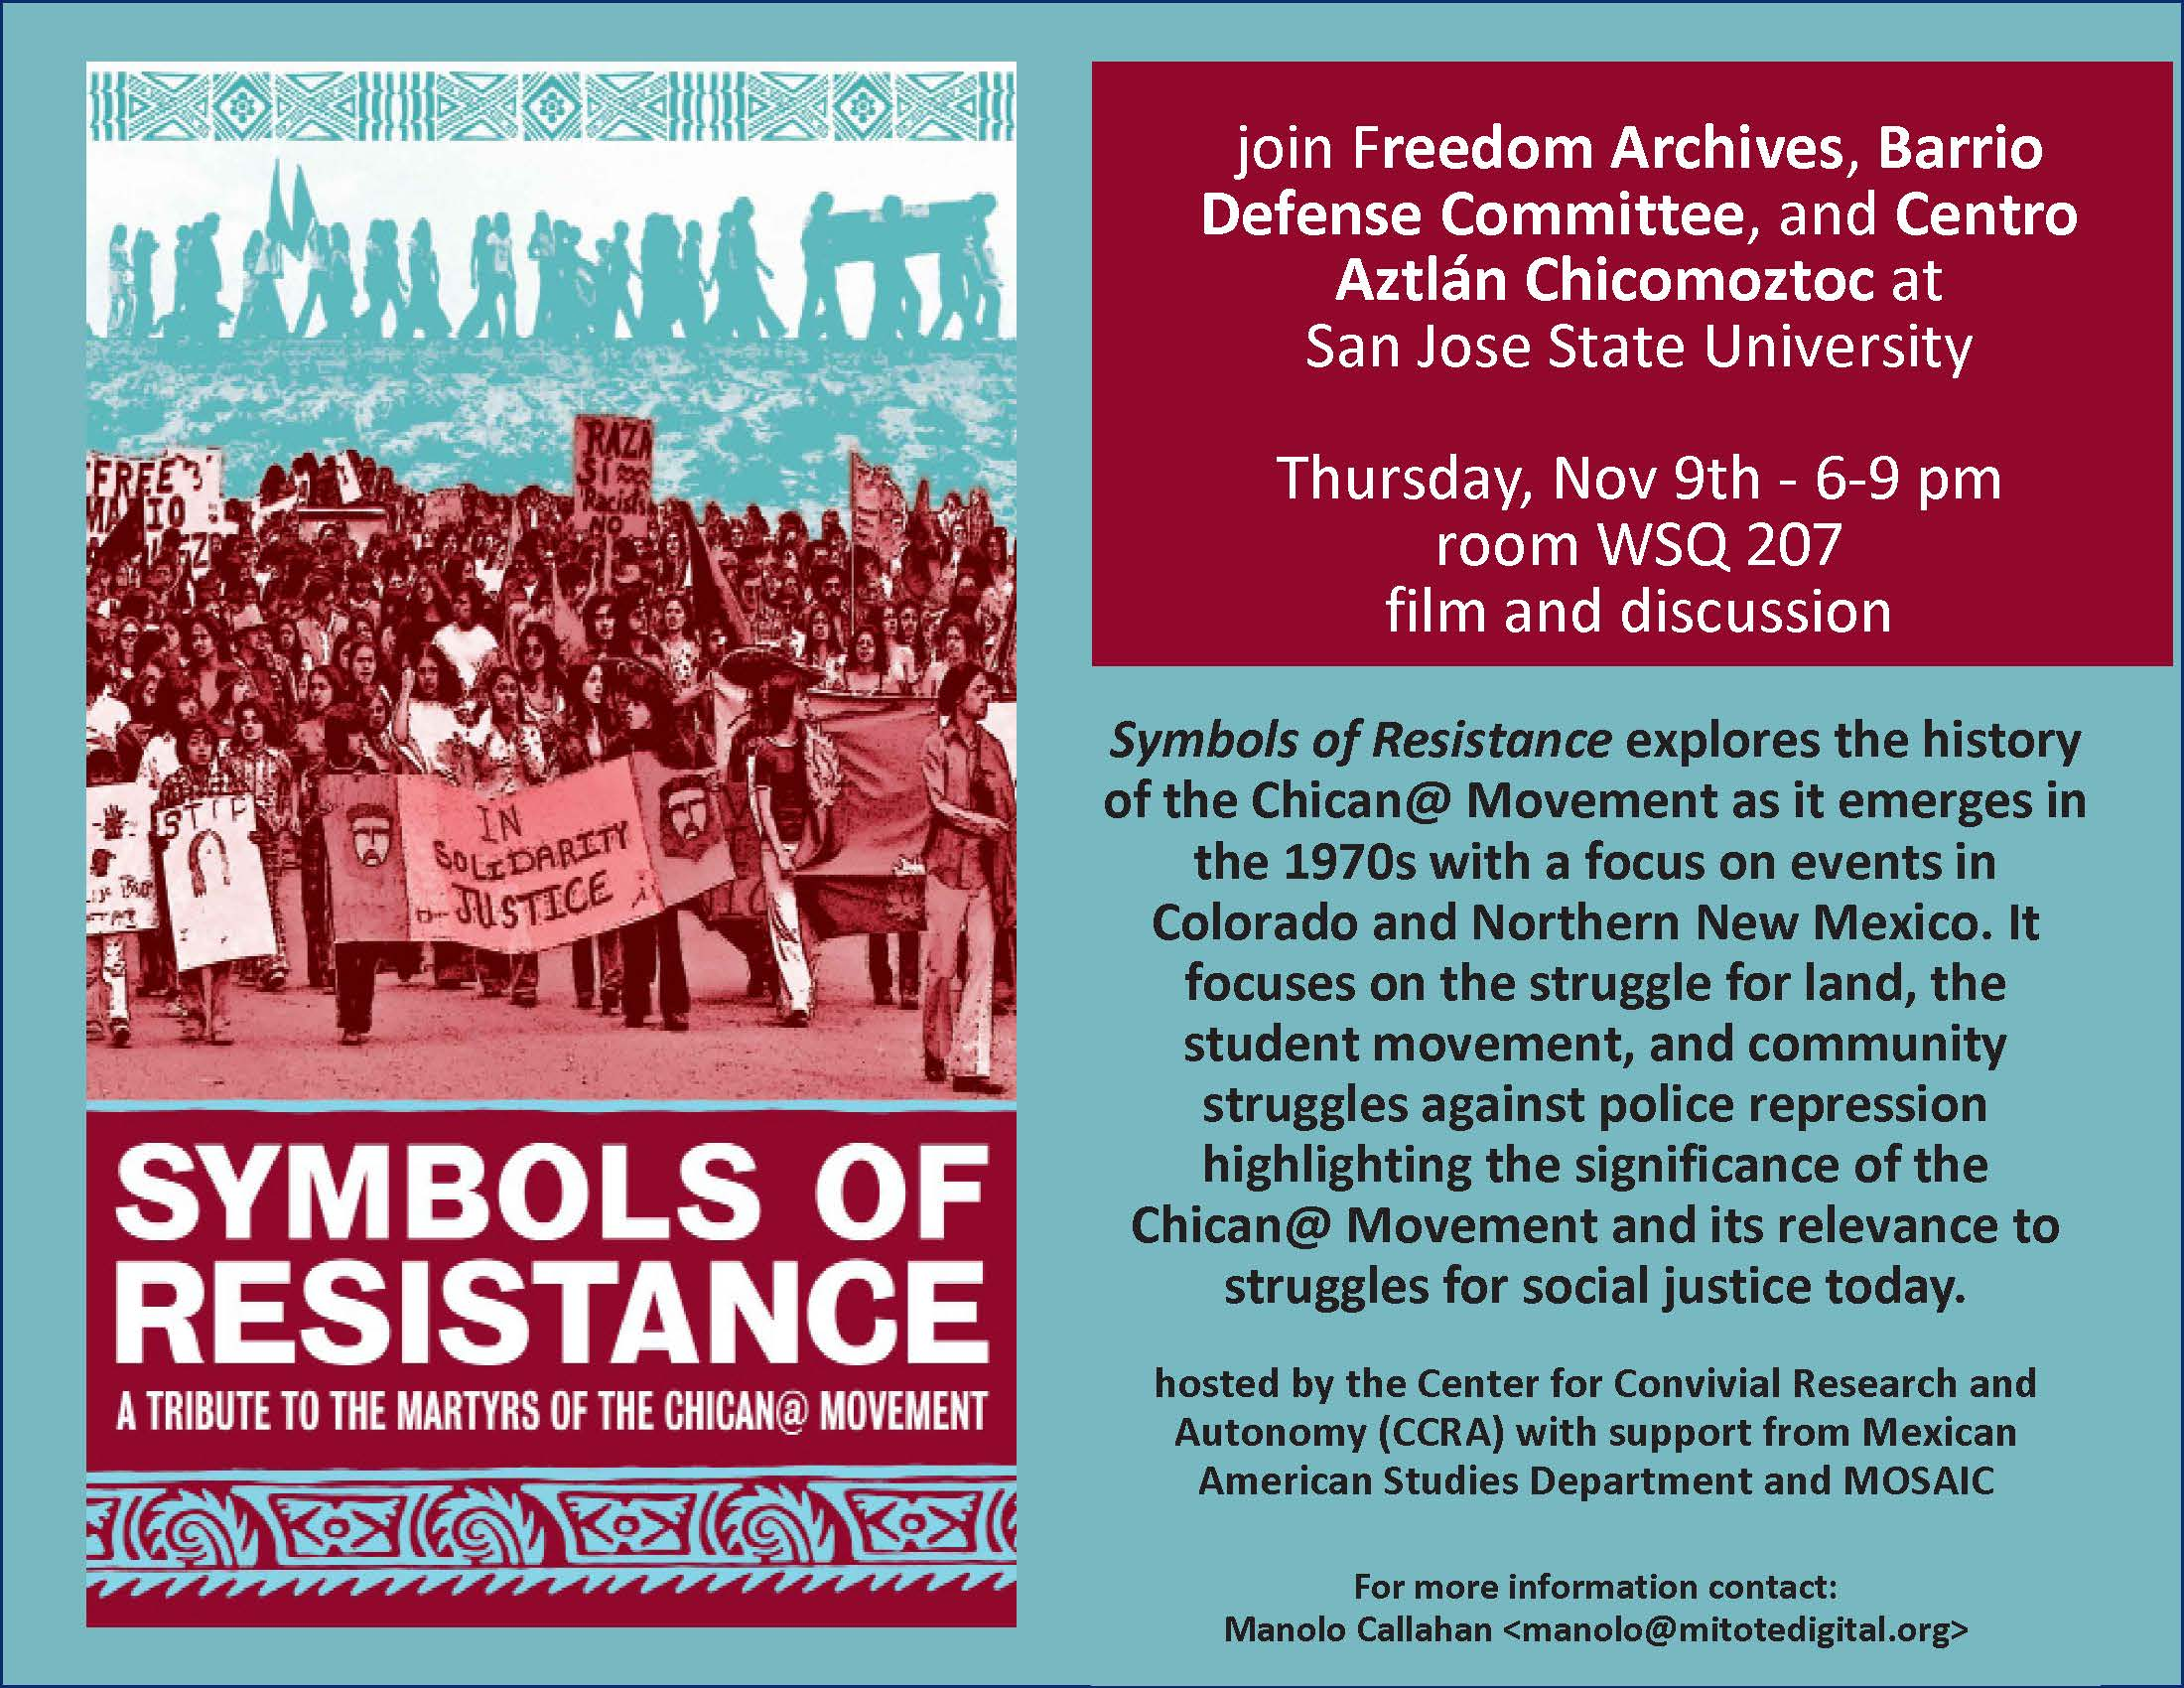 Flyer for Symbols of Resistance film and discussion